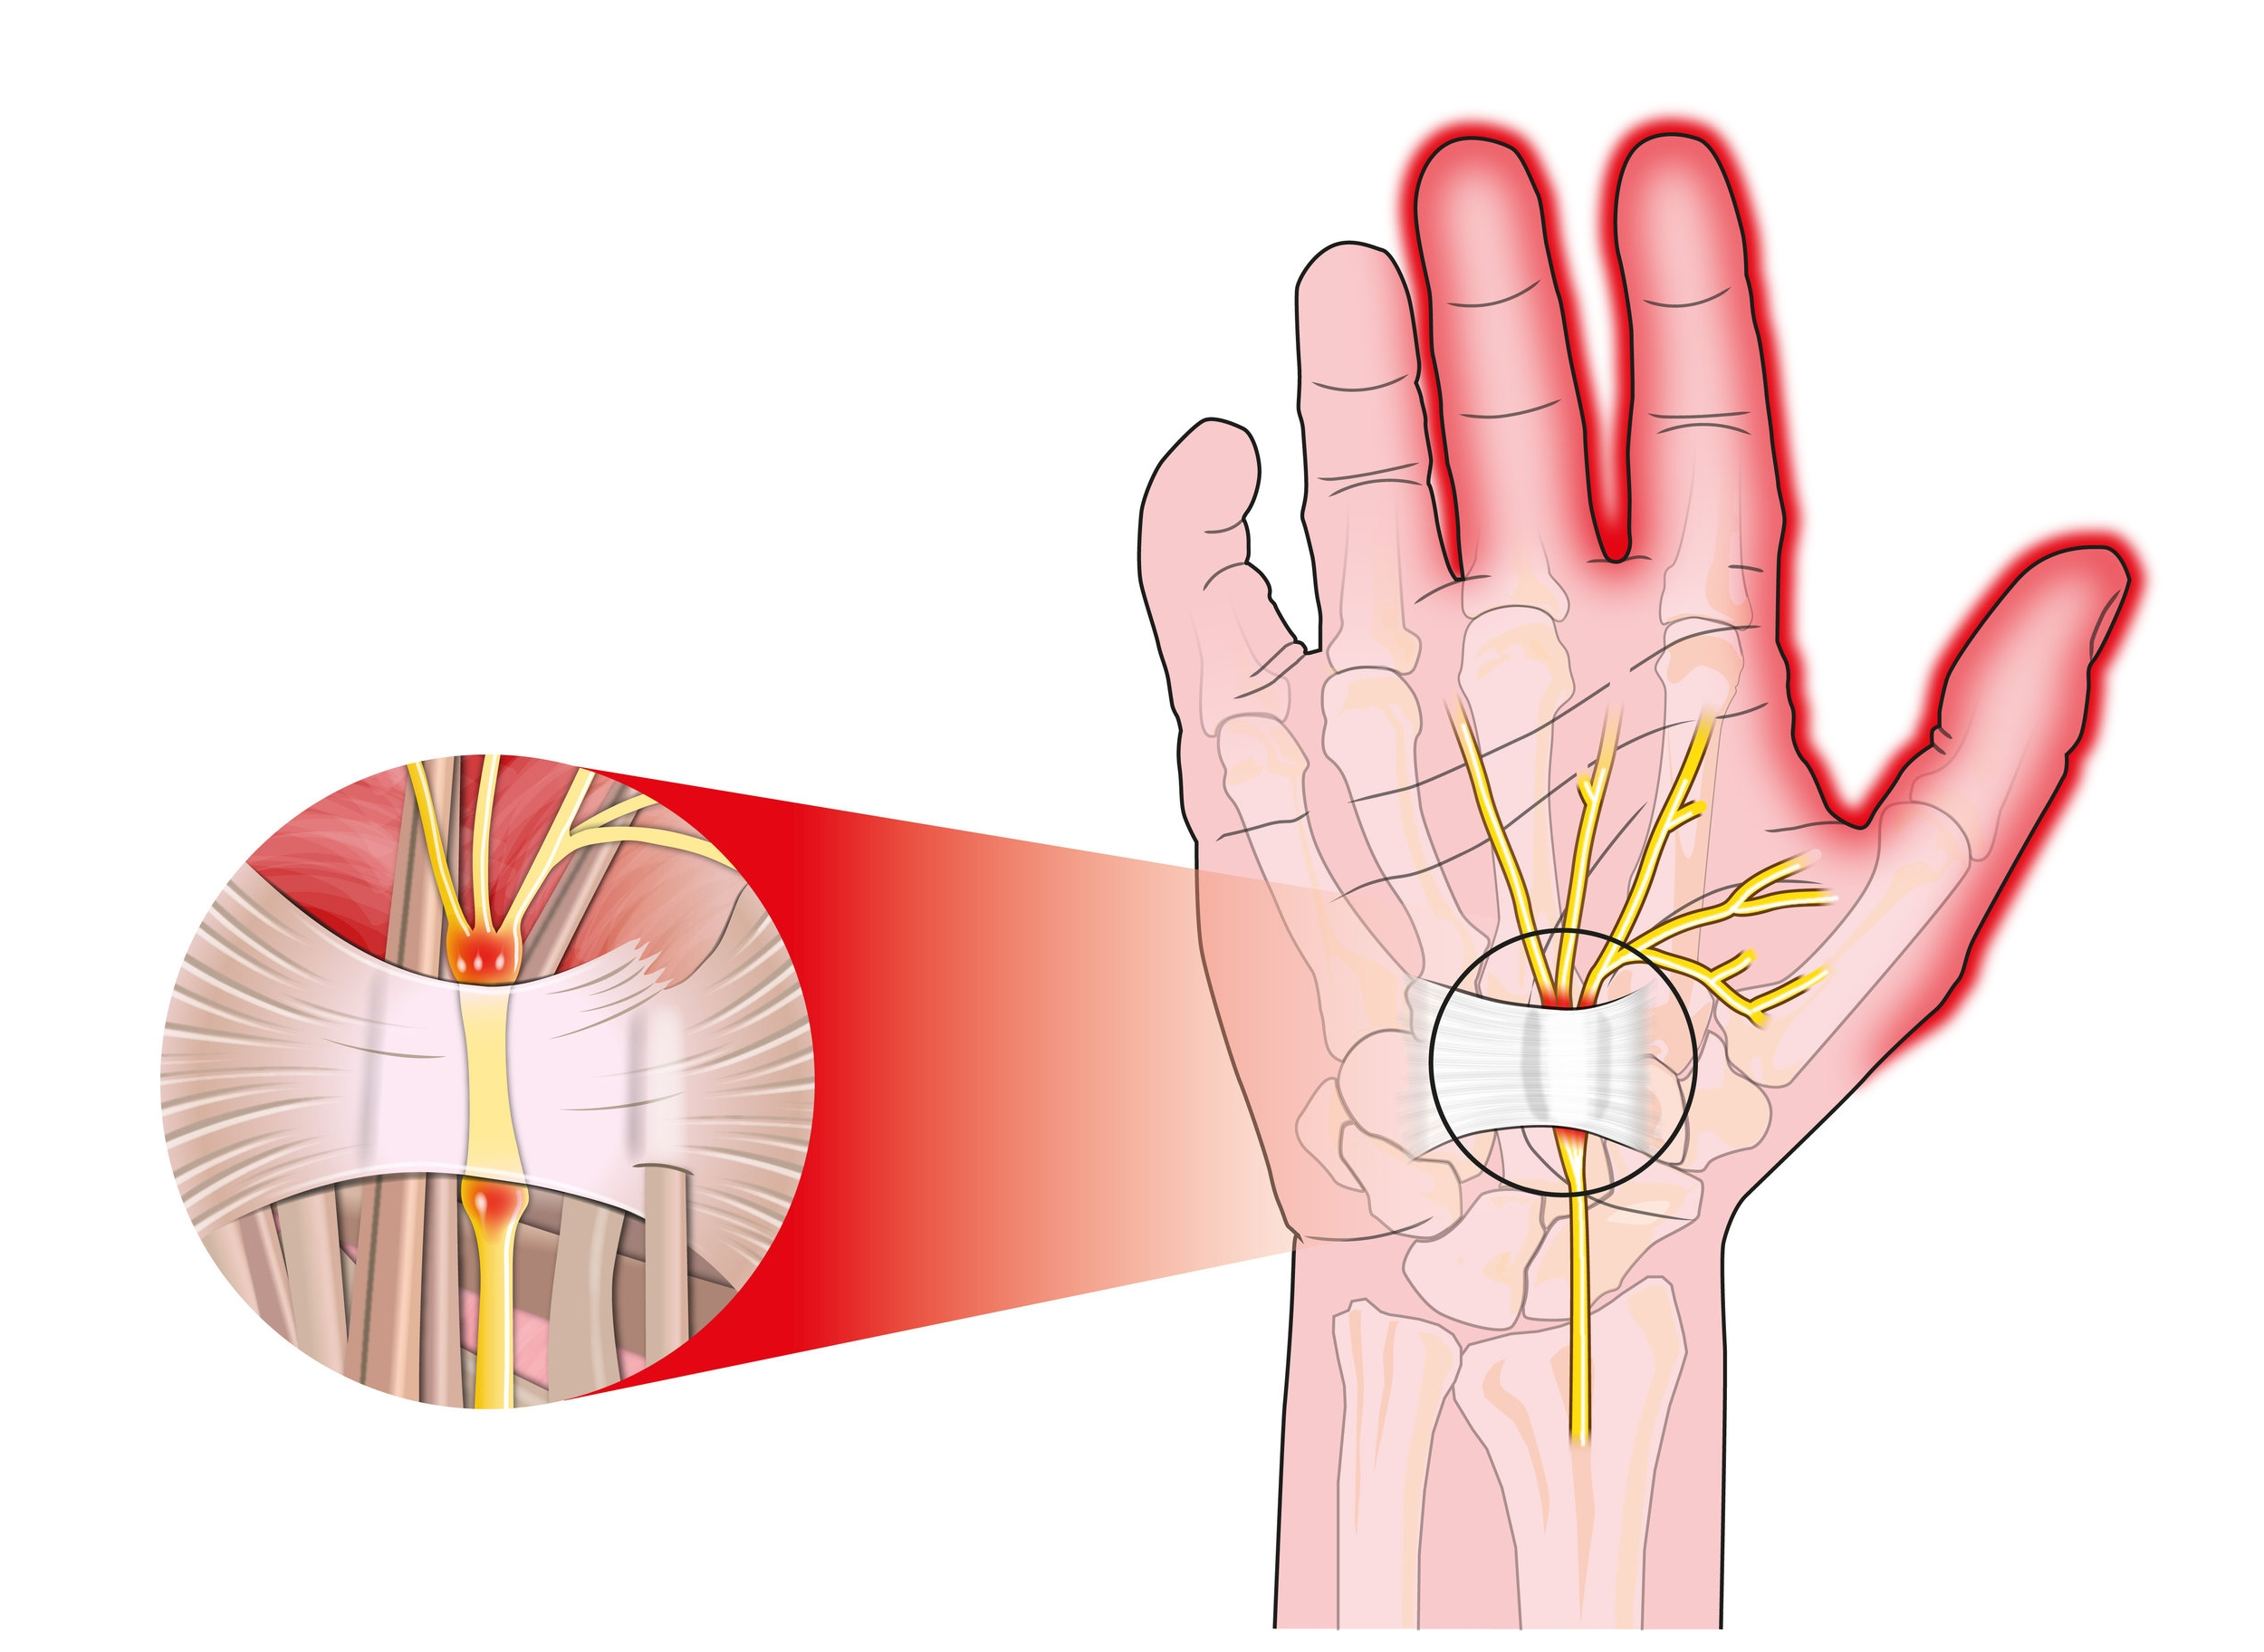 """Carpal tunnel syndrome is when one of the major nerves to the hand (the """"median nerve"""") gets compressed as it passes through a tunnel leading from the forearm to the palm."""